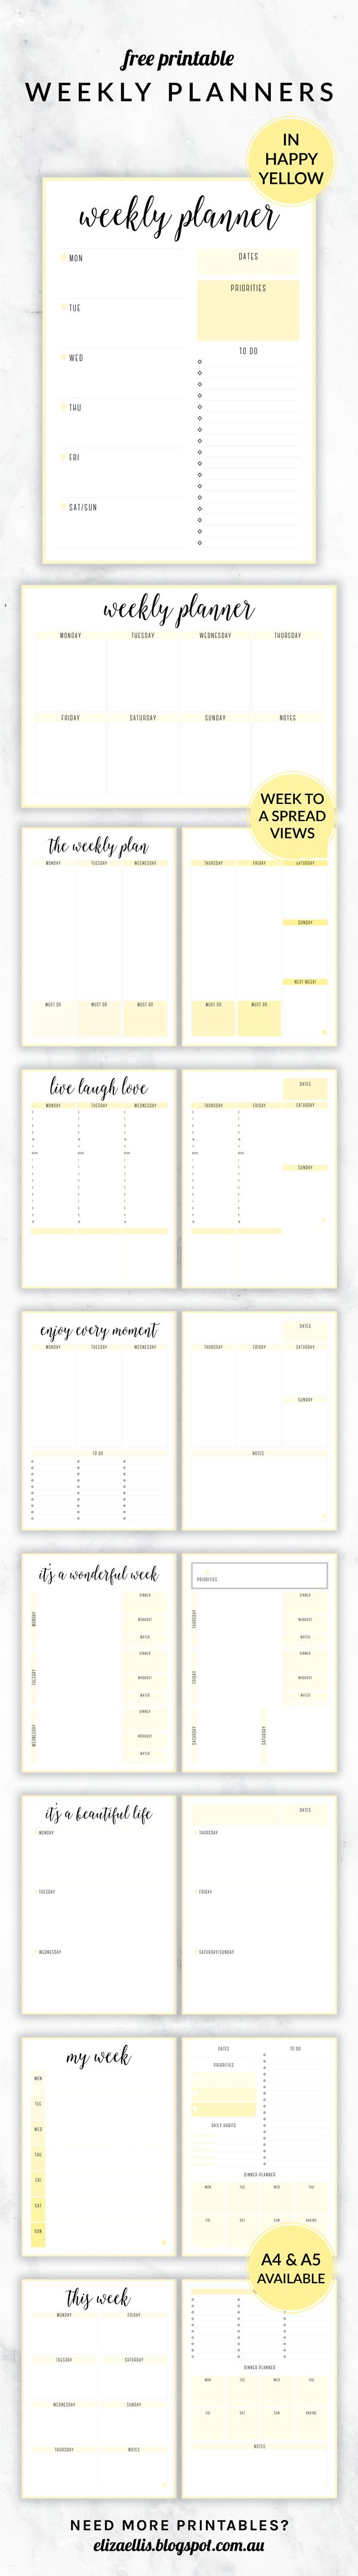 Free Printable Irma Weekly Planners in Happy by Eliza Ellis. With nine different styles, they're the perfect organizing solution for mums, entrepreneurs, bloggers, etsy sellers, professionals, WAHM's, SAHM's, students and moms. Available in 6 colors and both A4 and A5 sizes. Includes week to a page planners as well as week to a spread and two page planners. Enjoy!